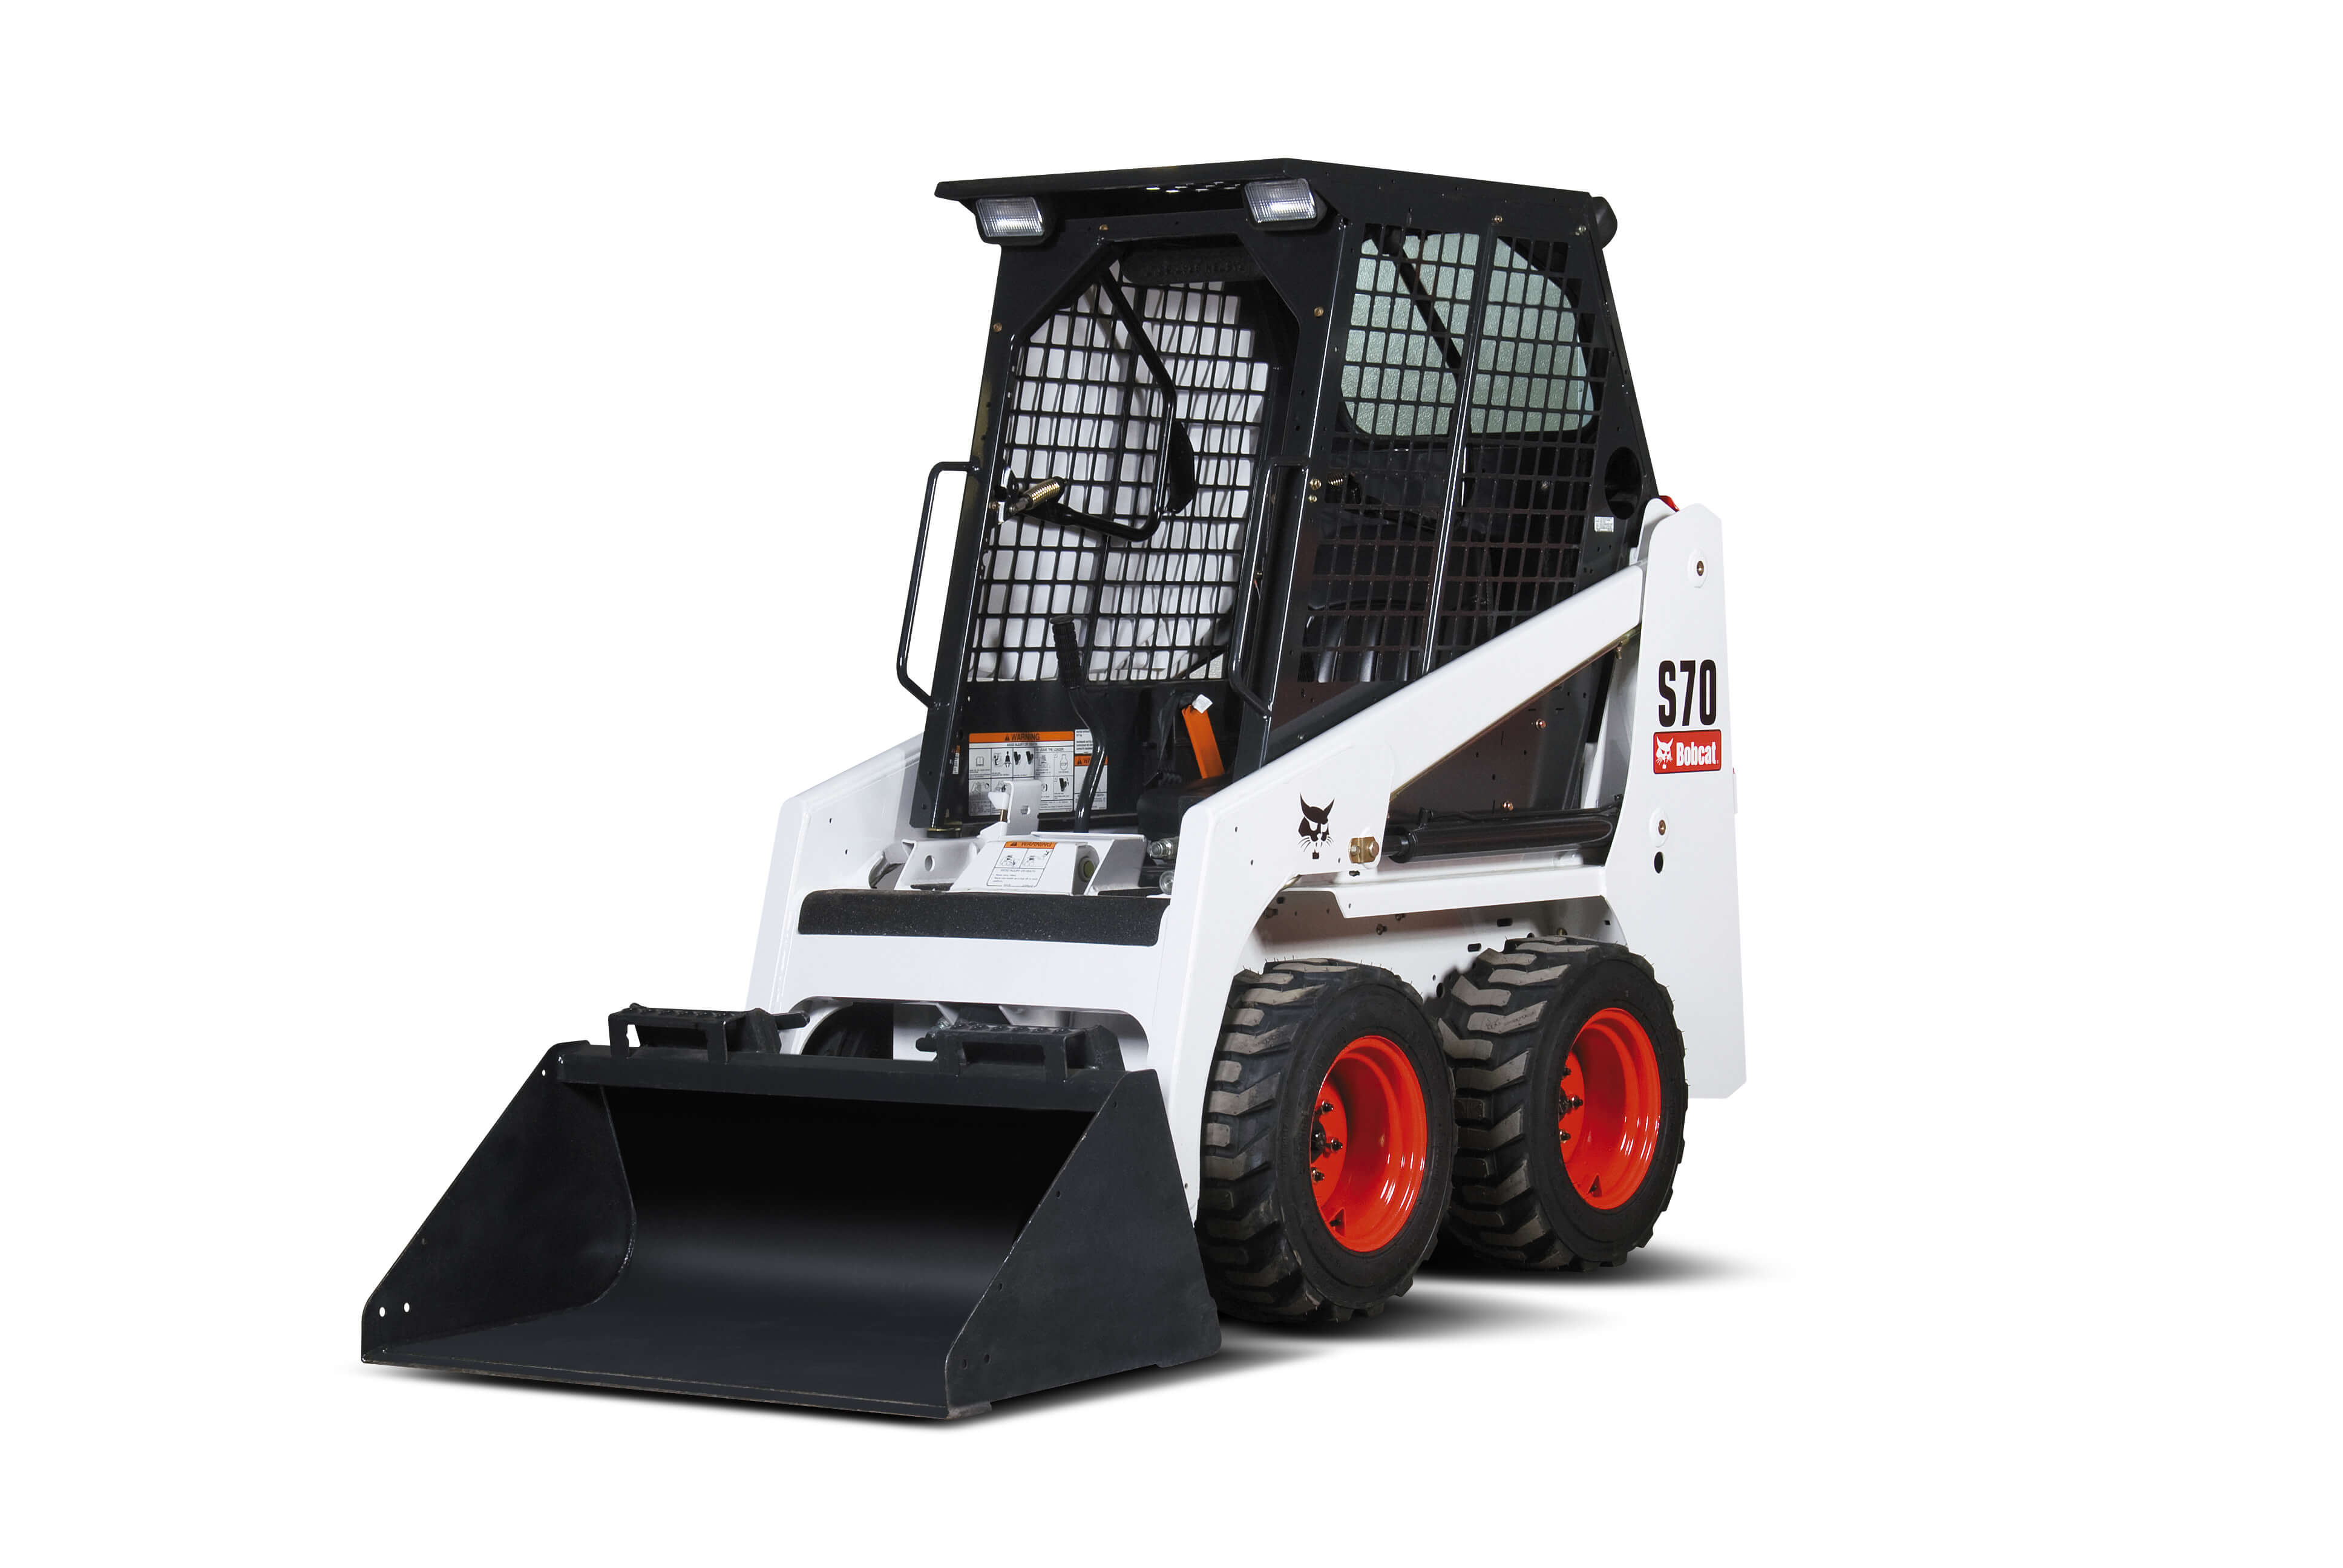 Bobcat Skid Steer S70